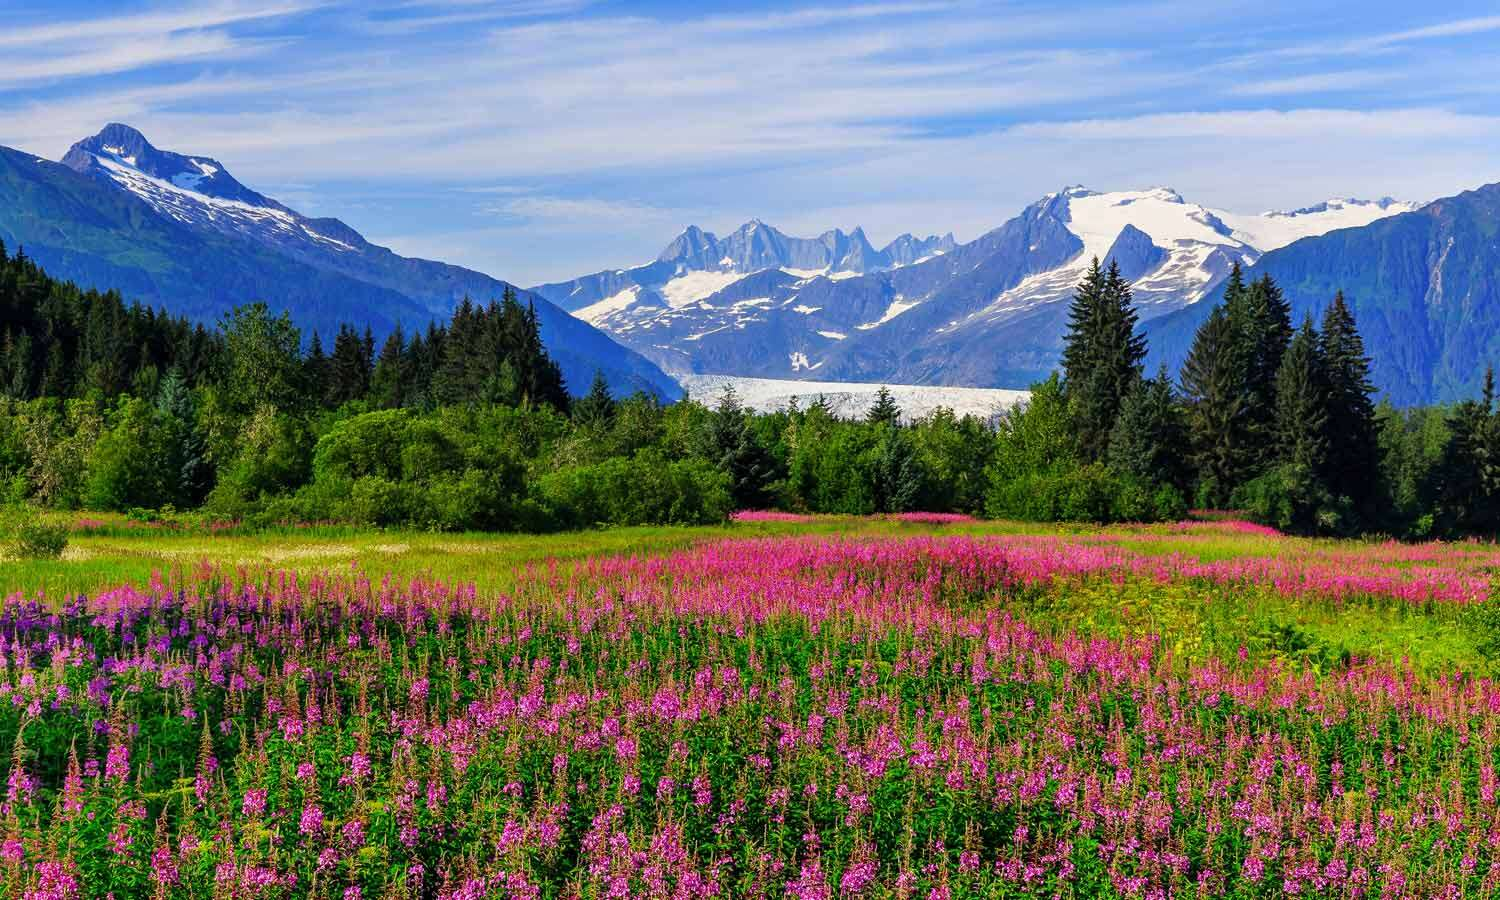 10 Once-in-a-Lifetime Adventures You Can Have in Alaska